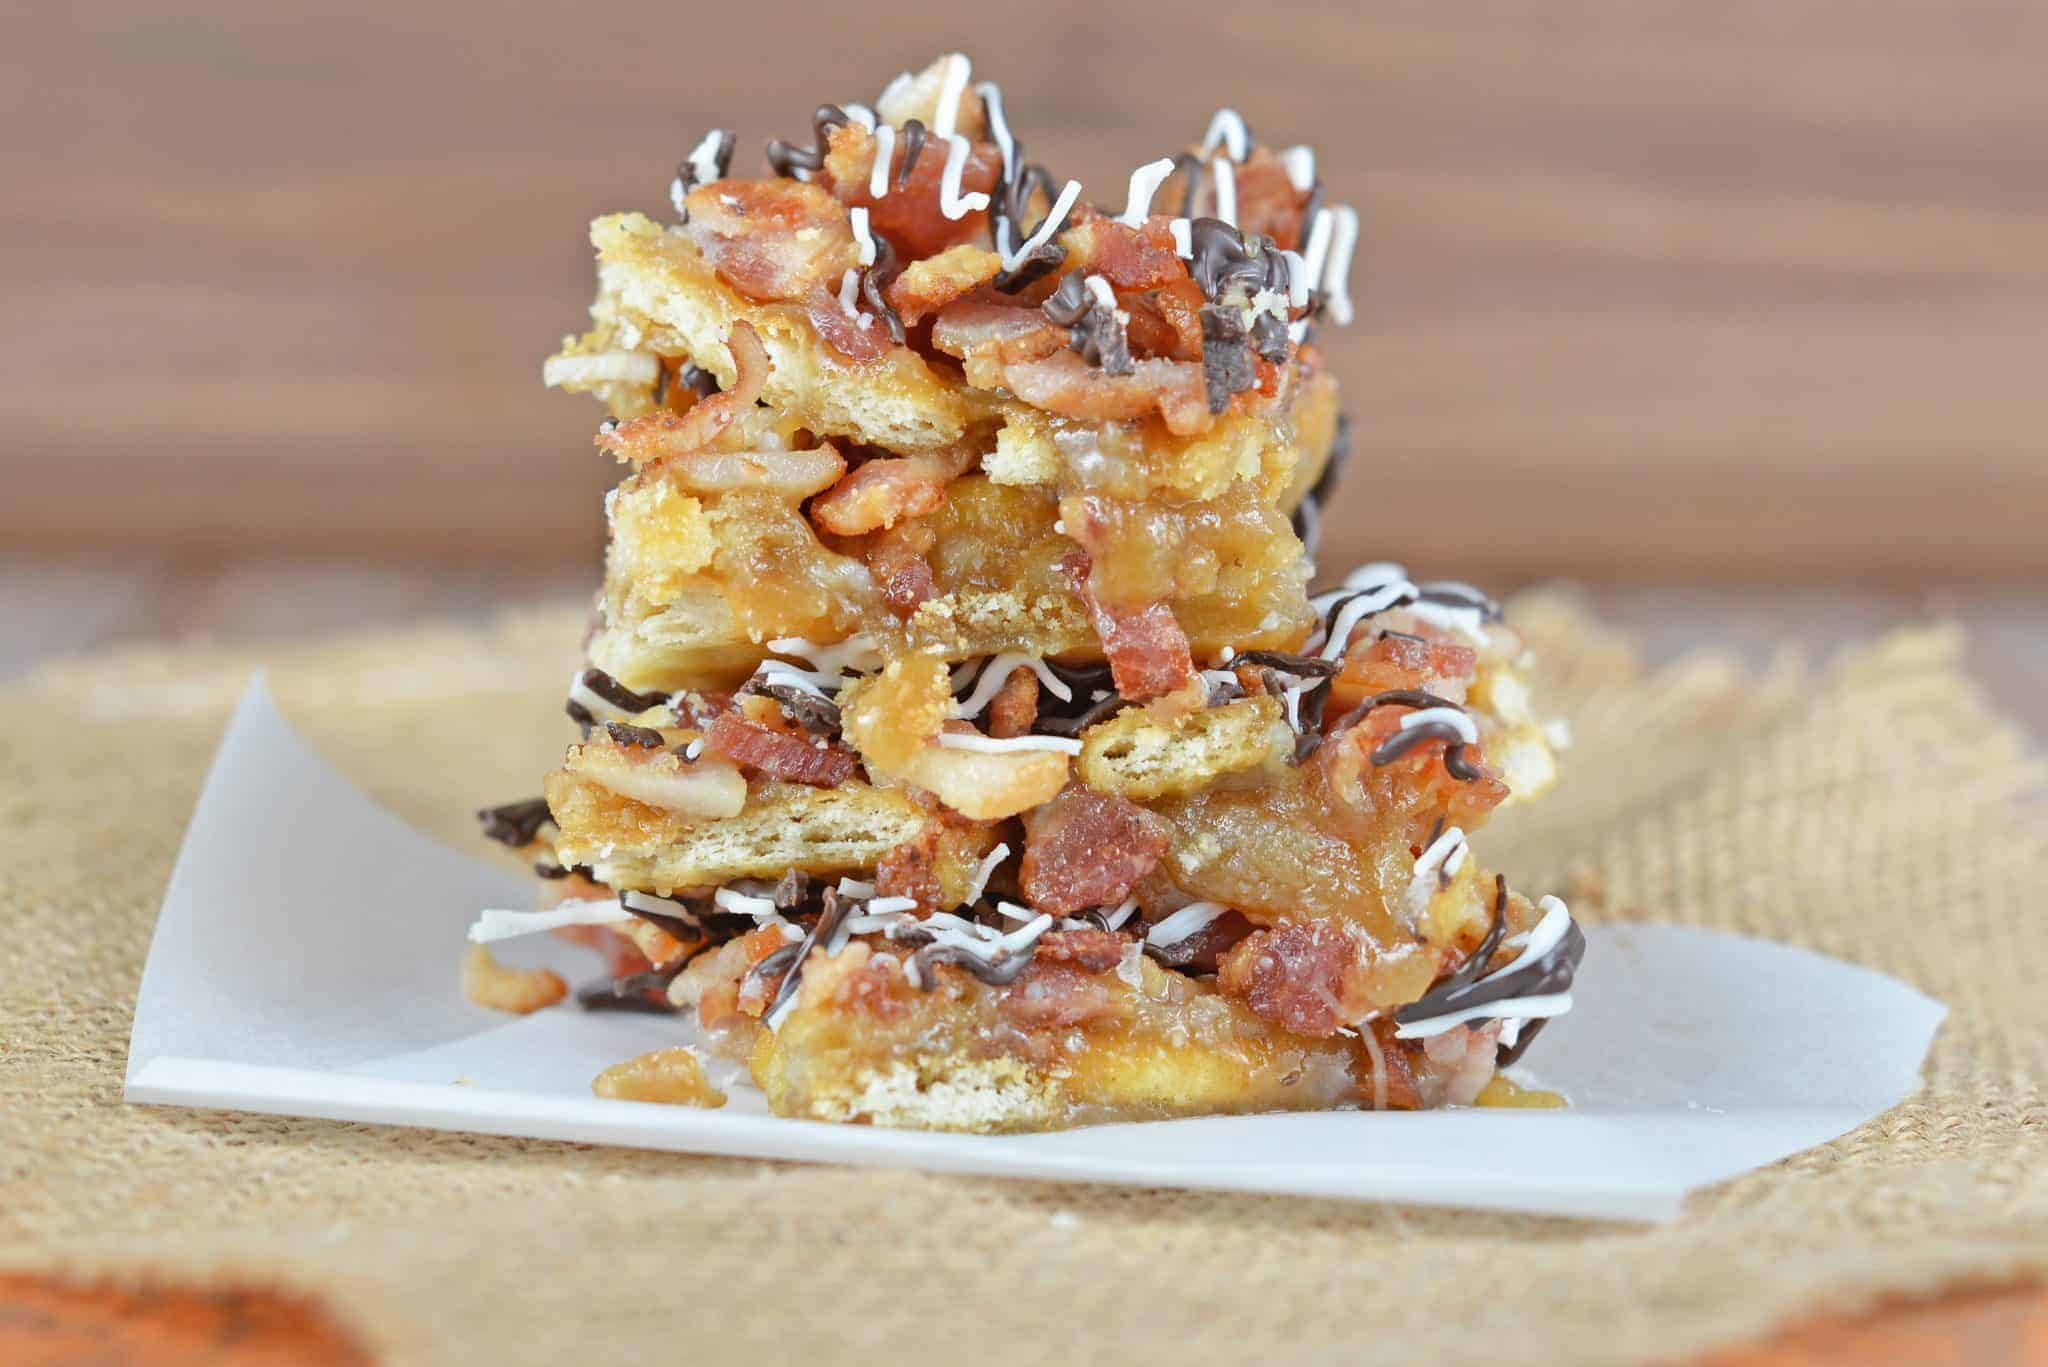 Chocolate Bacon Saltine Toffee - A Cracker Candy Recipe